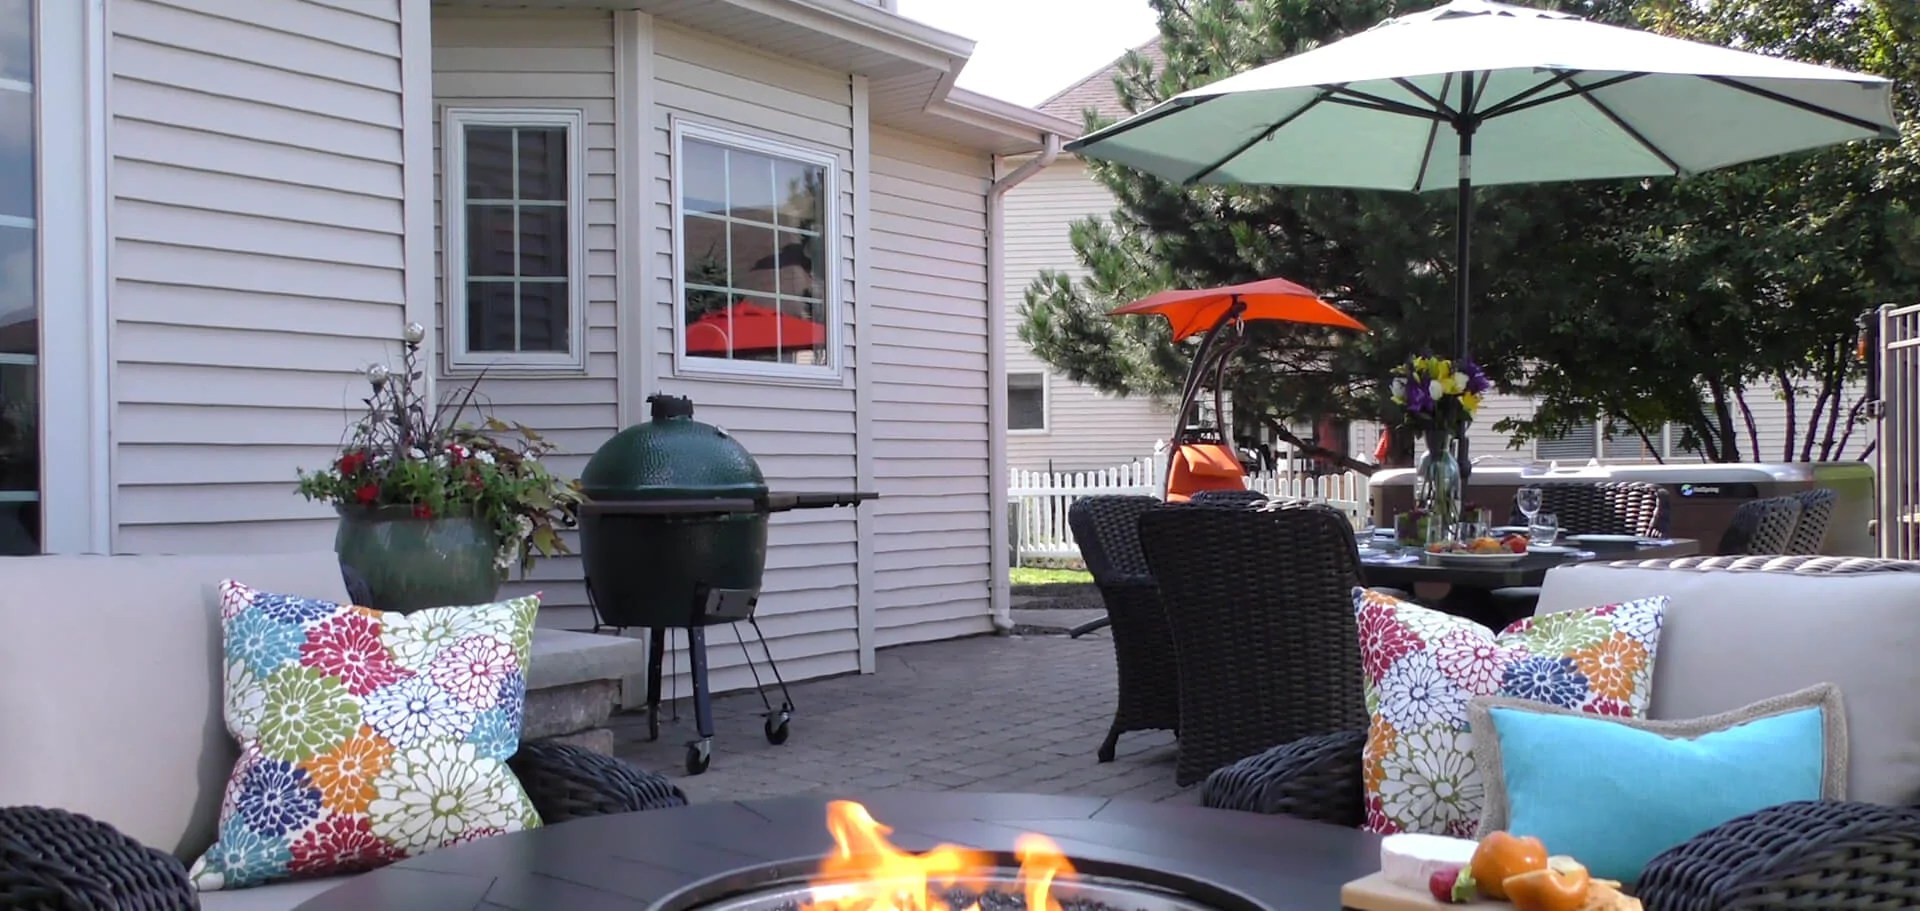 Pools Patio Furniture Hot Tubs Grills Christmas